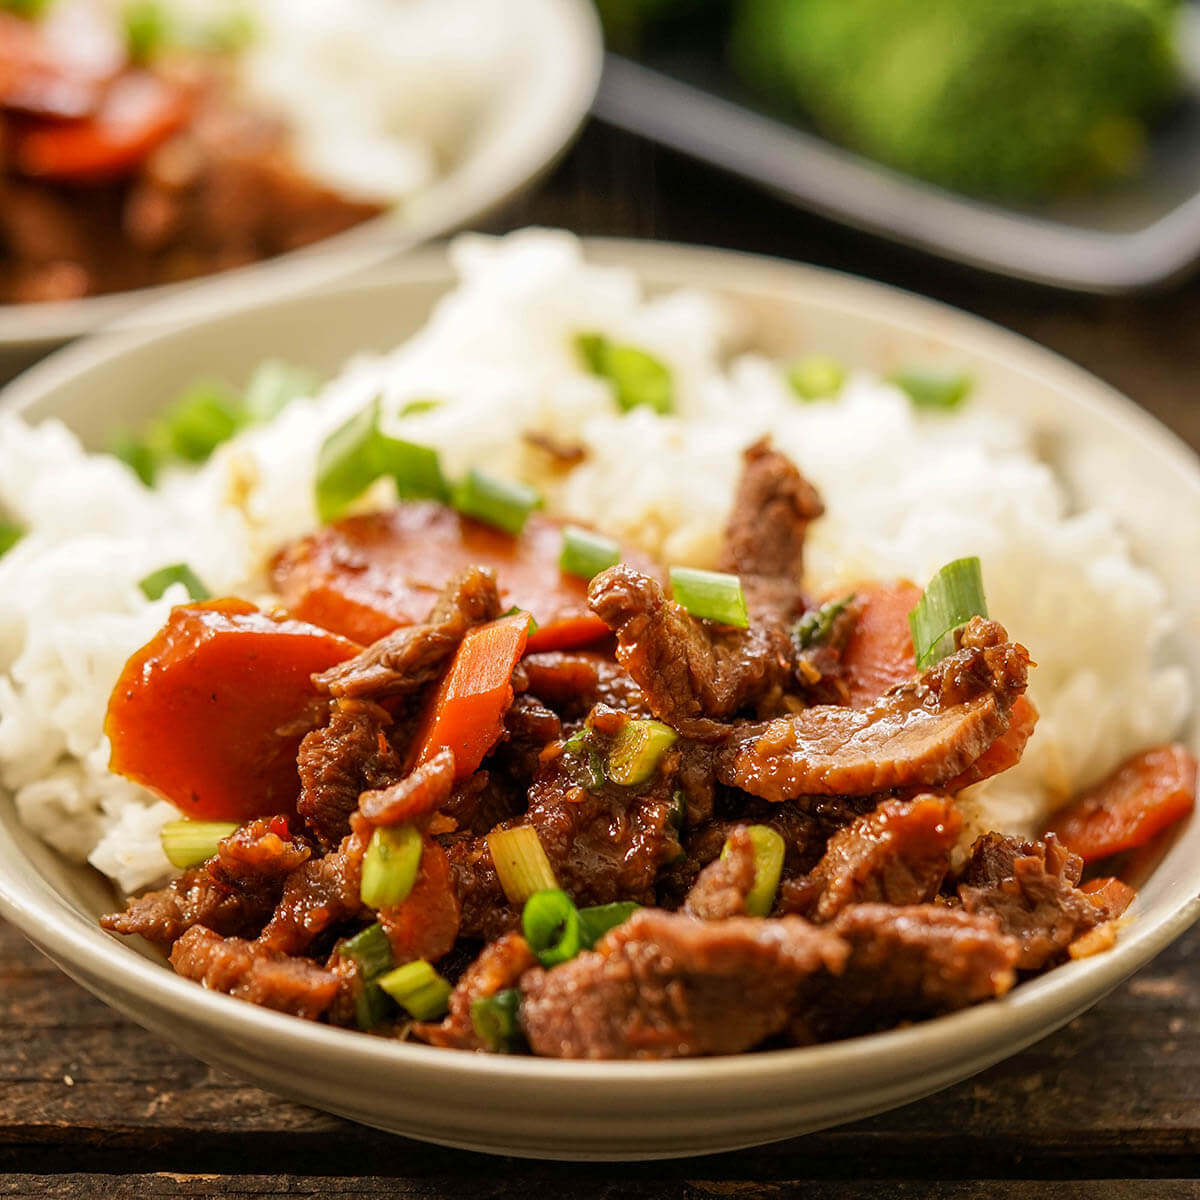 Stir-fried beef with vegetables in bowl with rice.